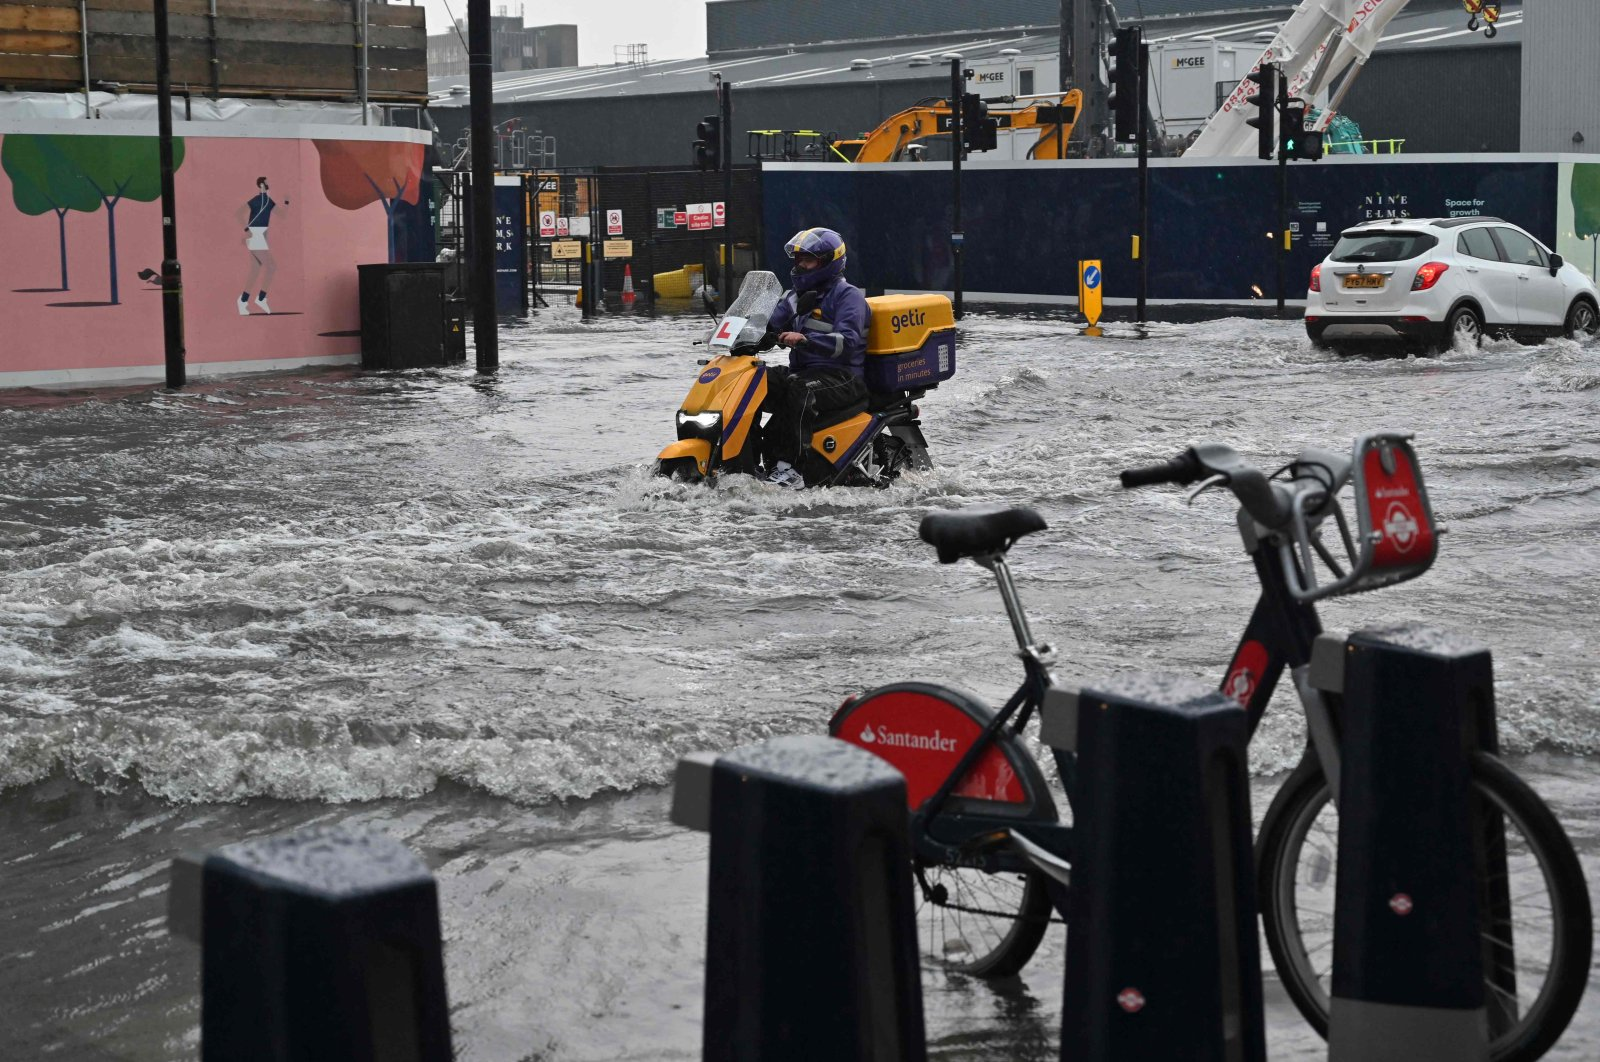 A motorcyclist rides through deep water on a flooded road in The Nine Elms district of London, England, July 25, 2021. (AFP Photo)